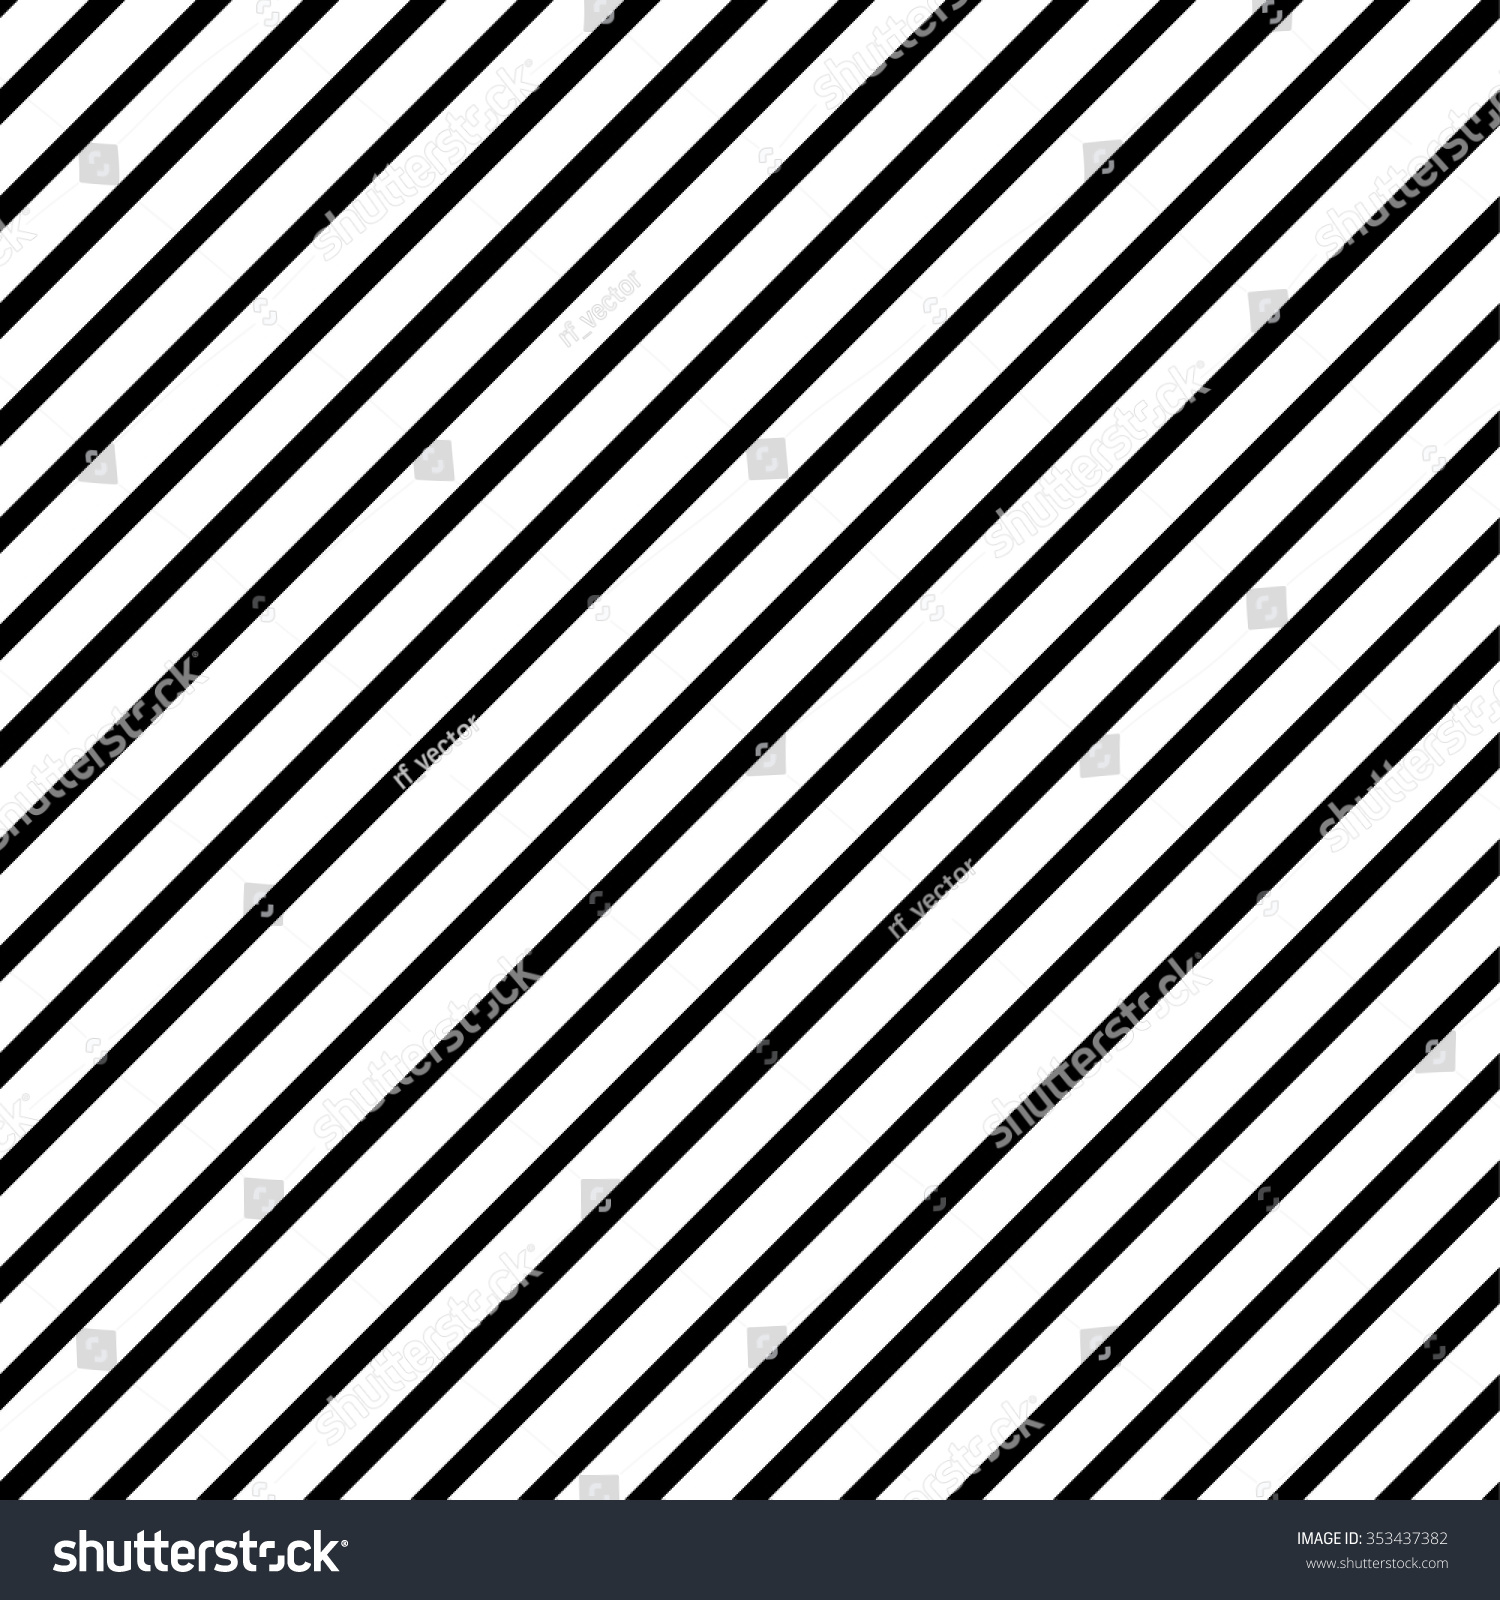 Line Texture Seamless : Seamless repeatable geometric pattern with diagonal lines